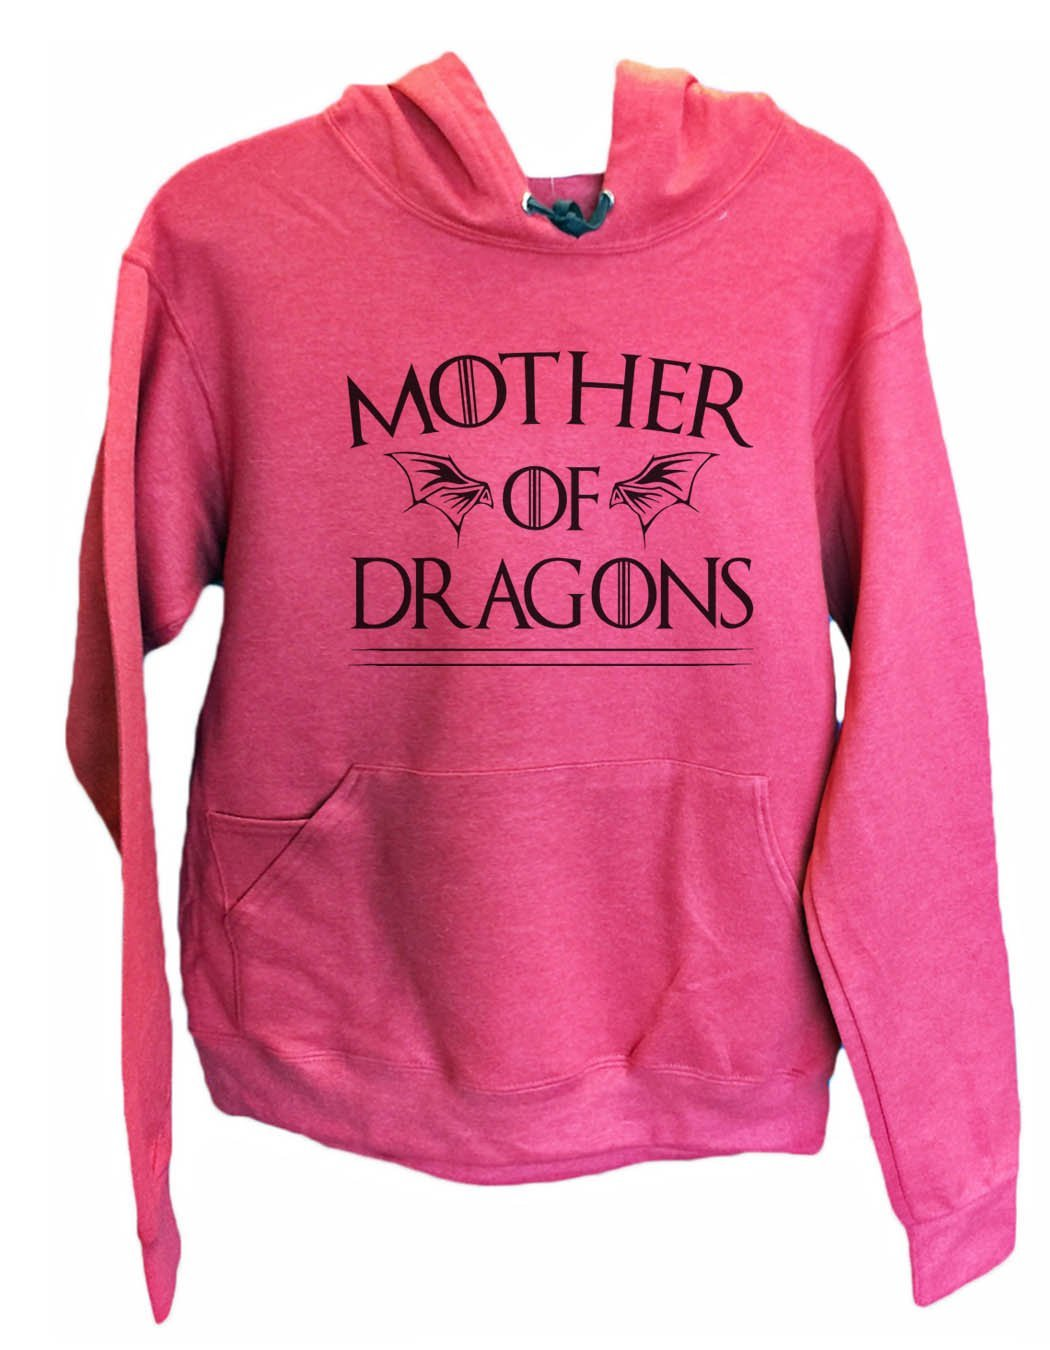 UNISEX HOODIE - Mother Of Dragons Game Of Thrones - FUNNY MENS AND WOMENS HOODED SWEATSHIRTS - 2282 Funny Shirt